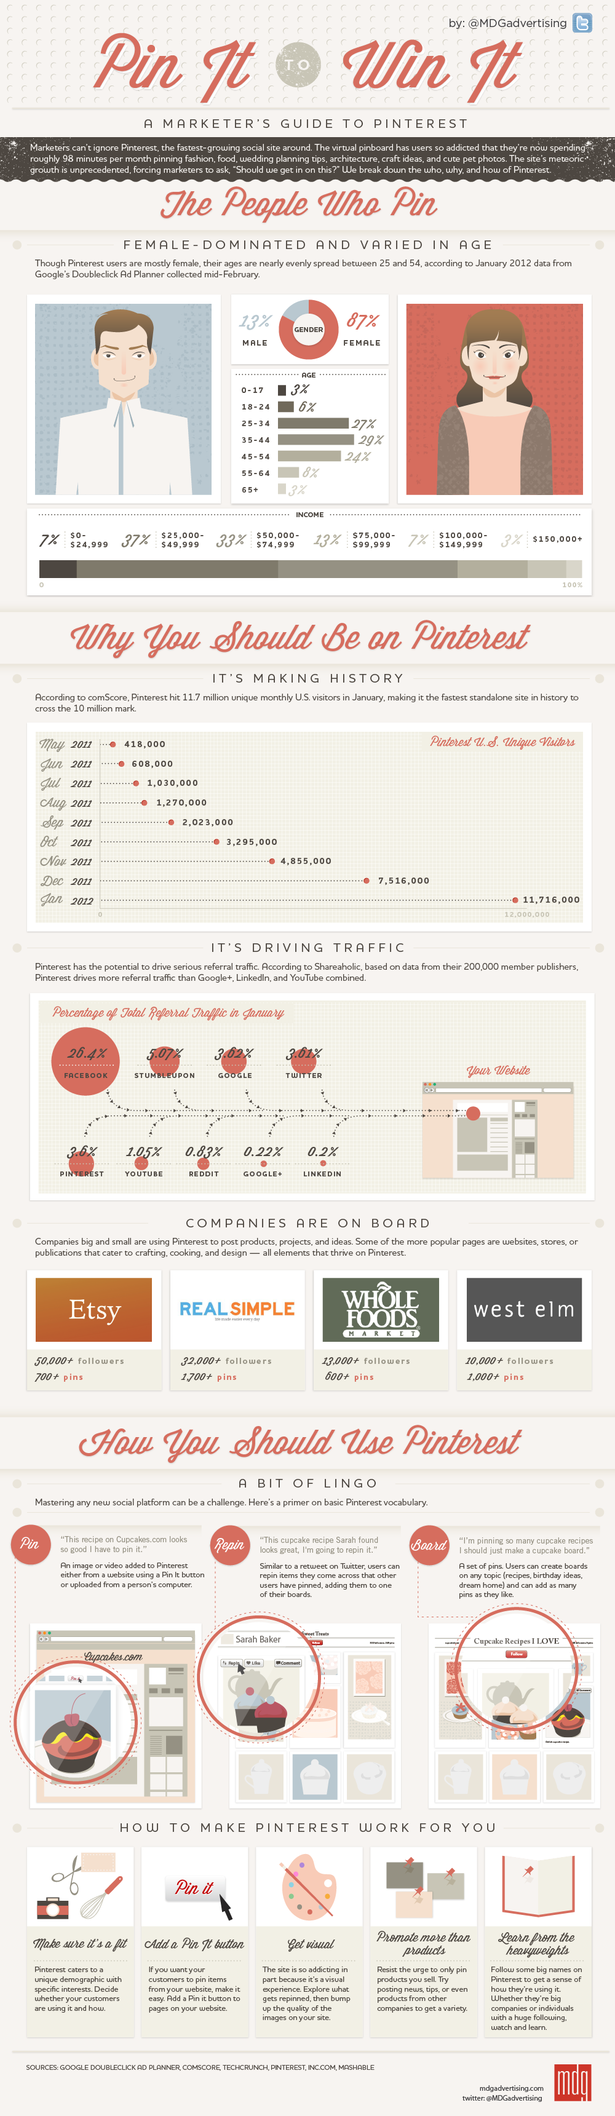 Nine awesome Pinterest infographics   Econsultancy